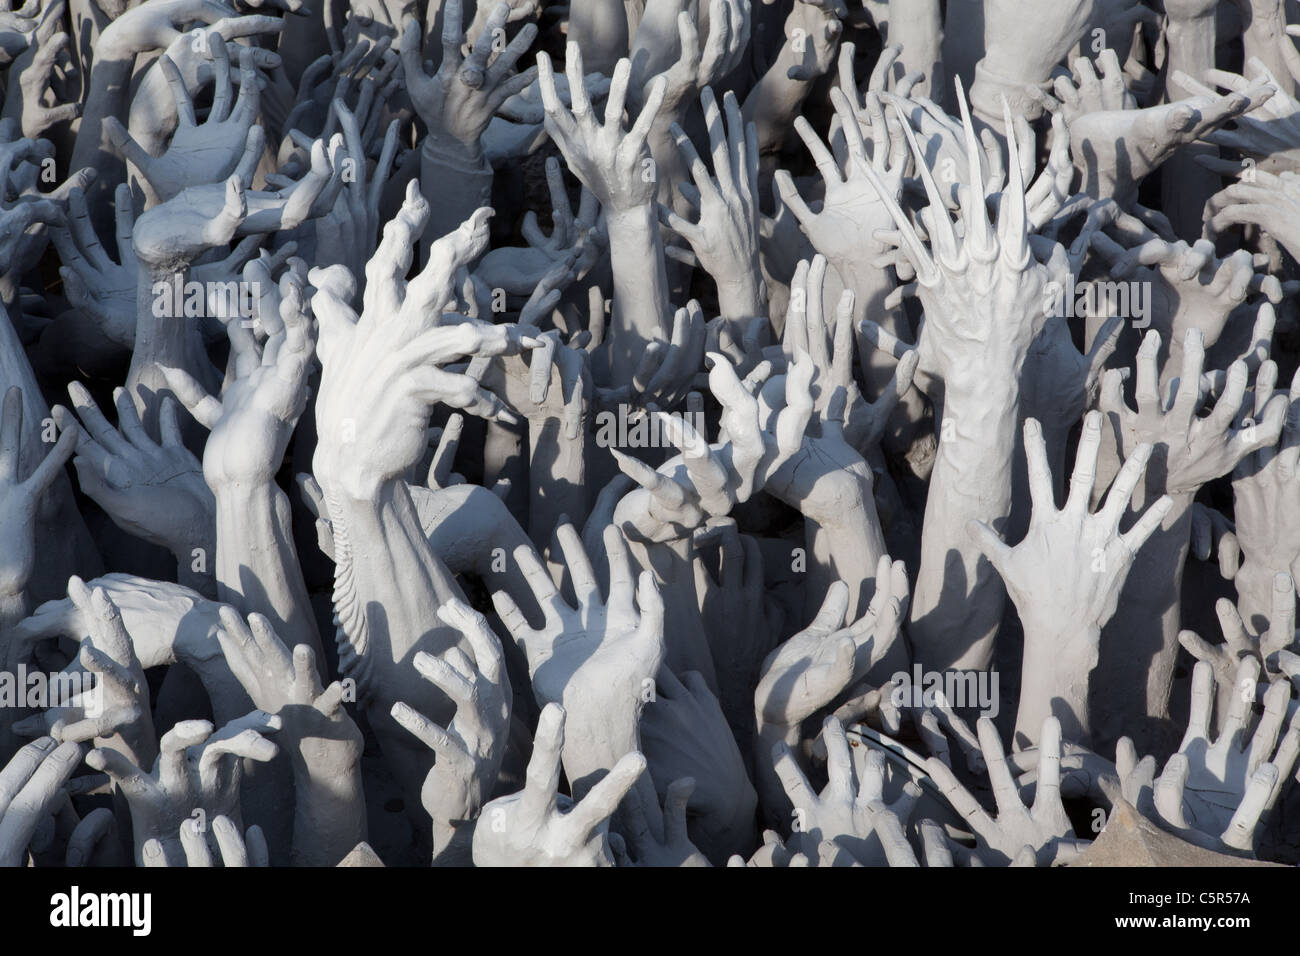 Wat Rong Khun samsara shows the failures of enlightenment with grotesque 'gargoyles' - Stock Image